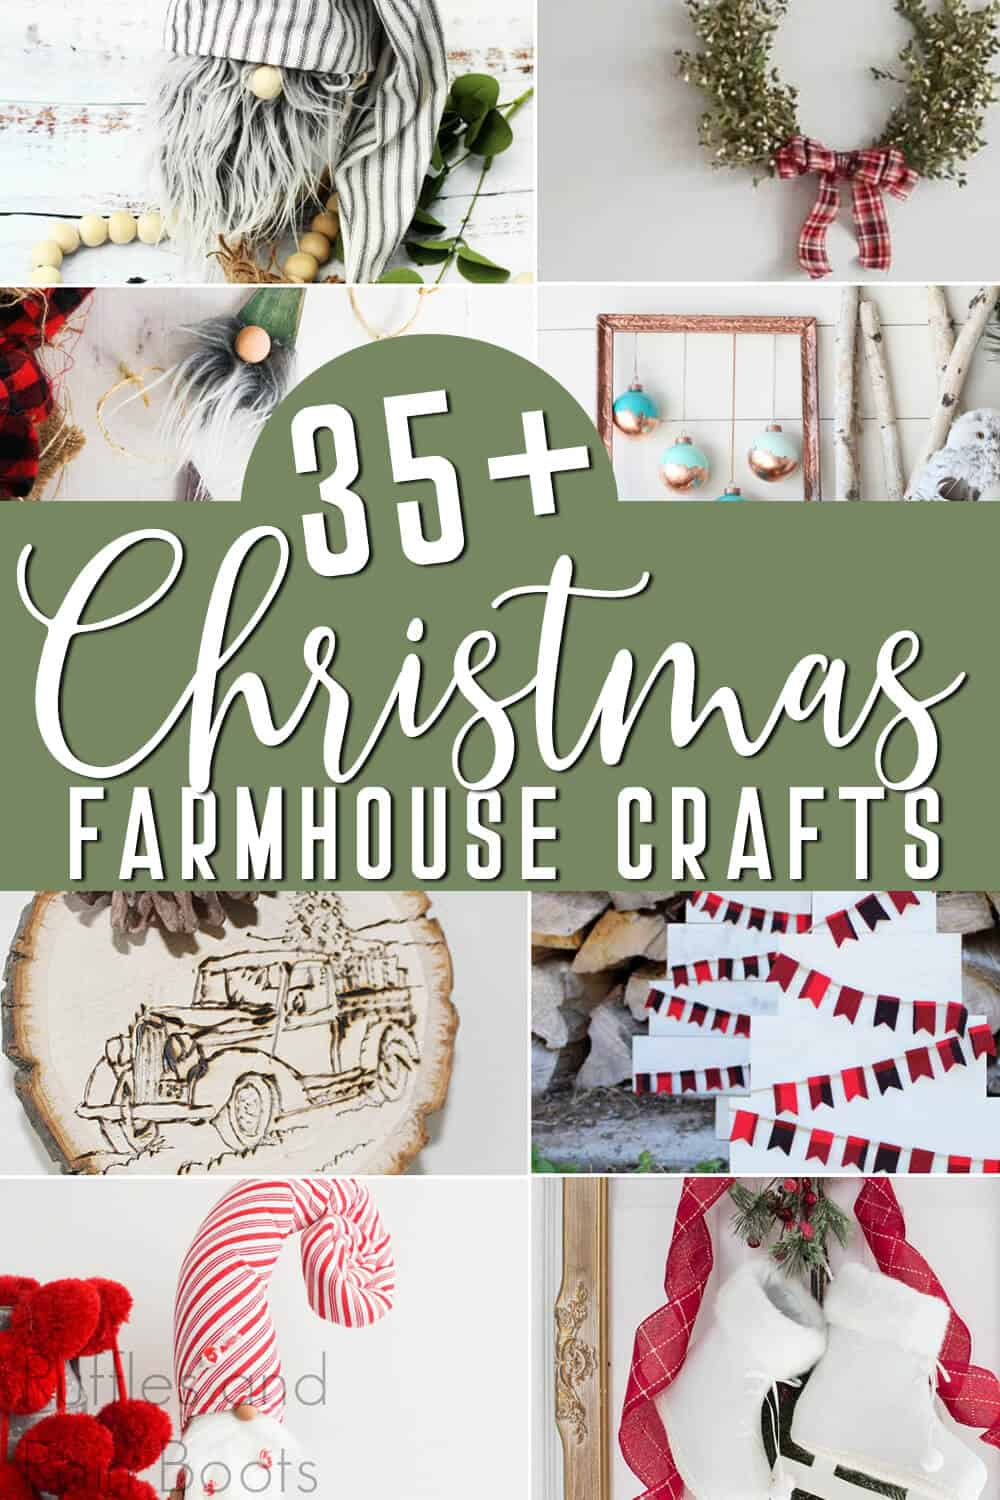 Diy Farmhouse Christmas Crafts And Gift Ideas You Can Make